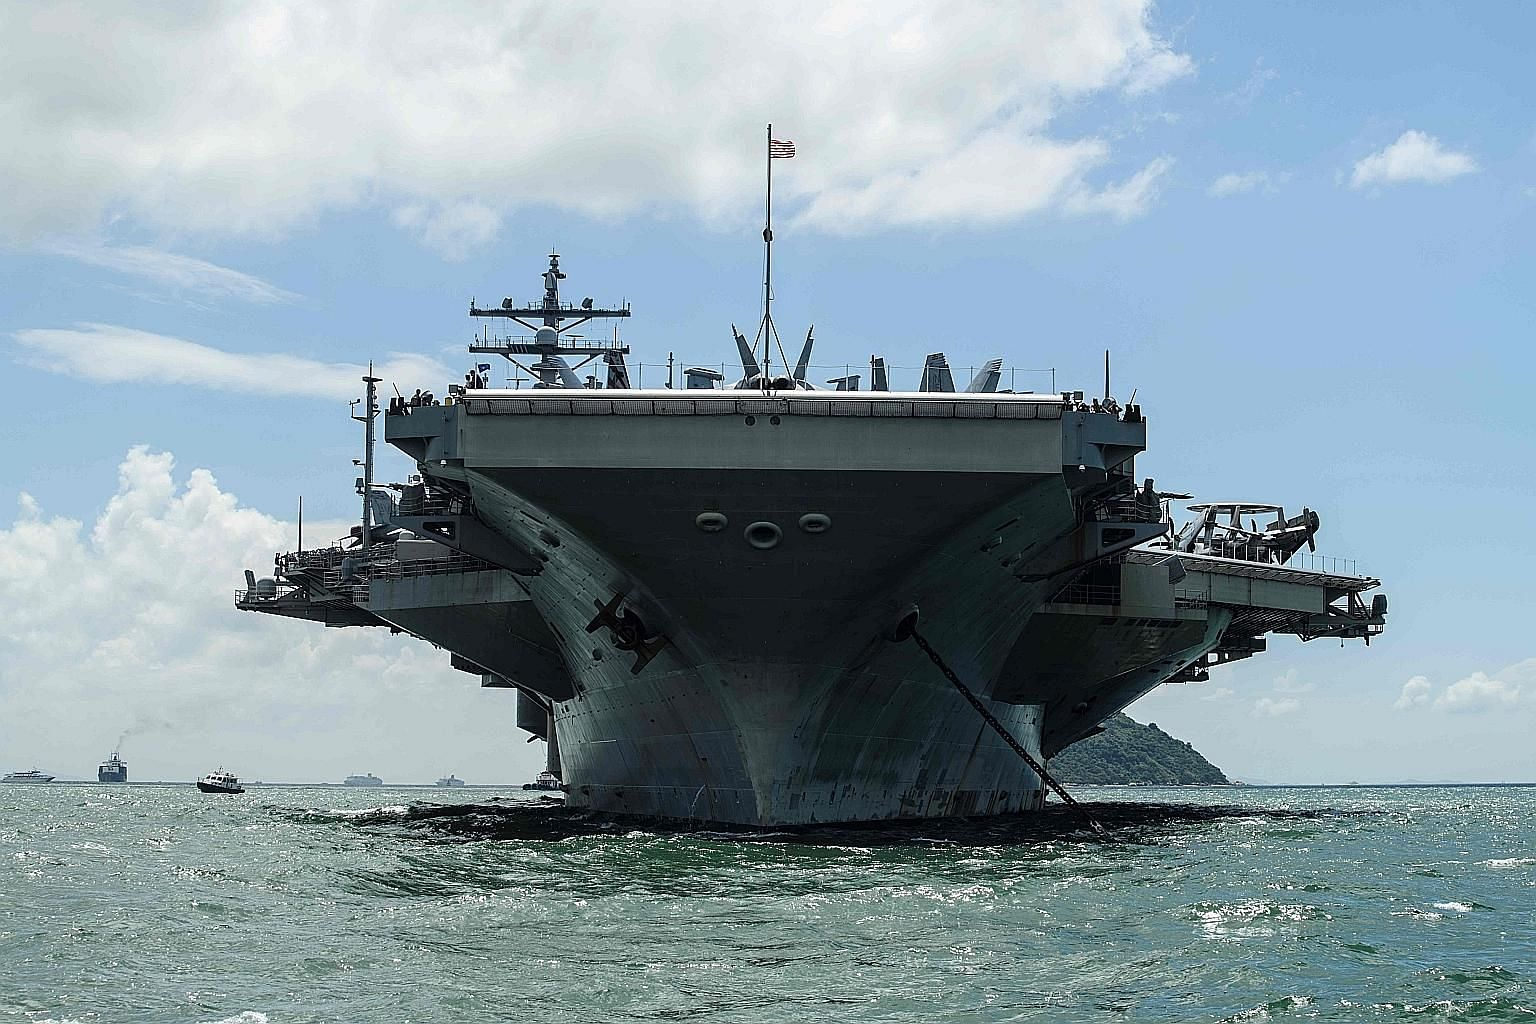 The USS Ronald Reagan aircraft carrier is among key US strategic assets joining South Korean warships and anti-submarine aircraft in the maritime exercise in waters east and west of the Korean peninsula.